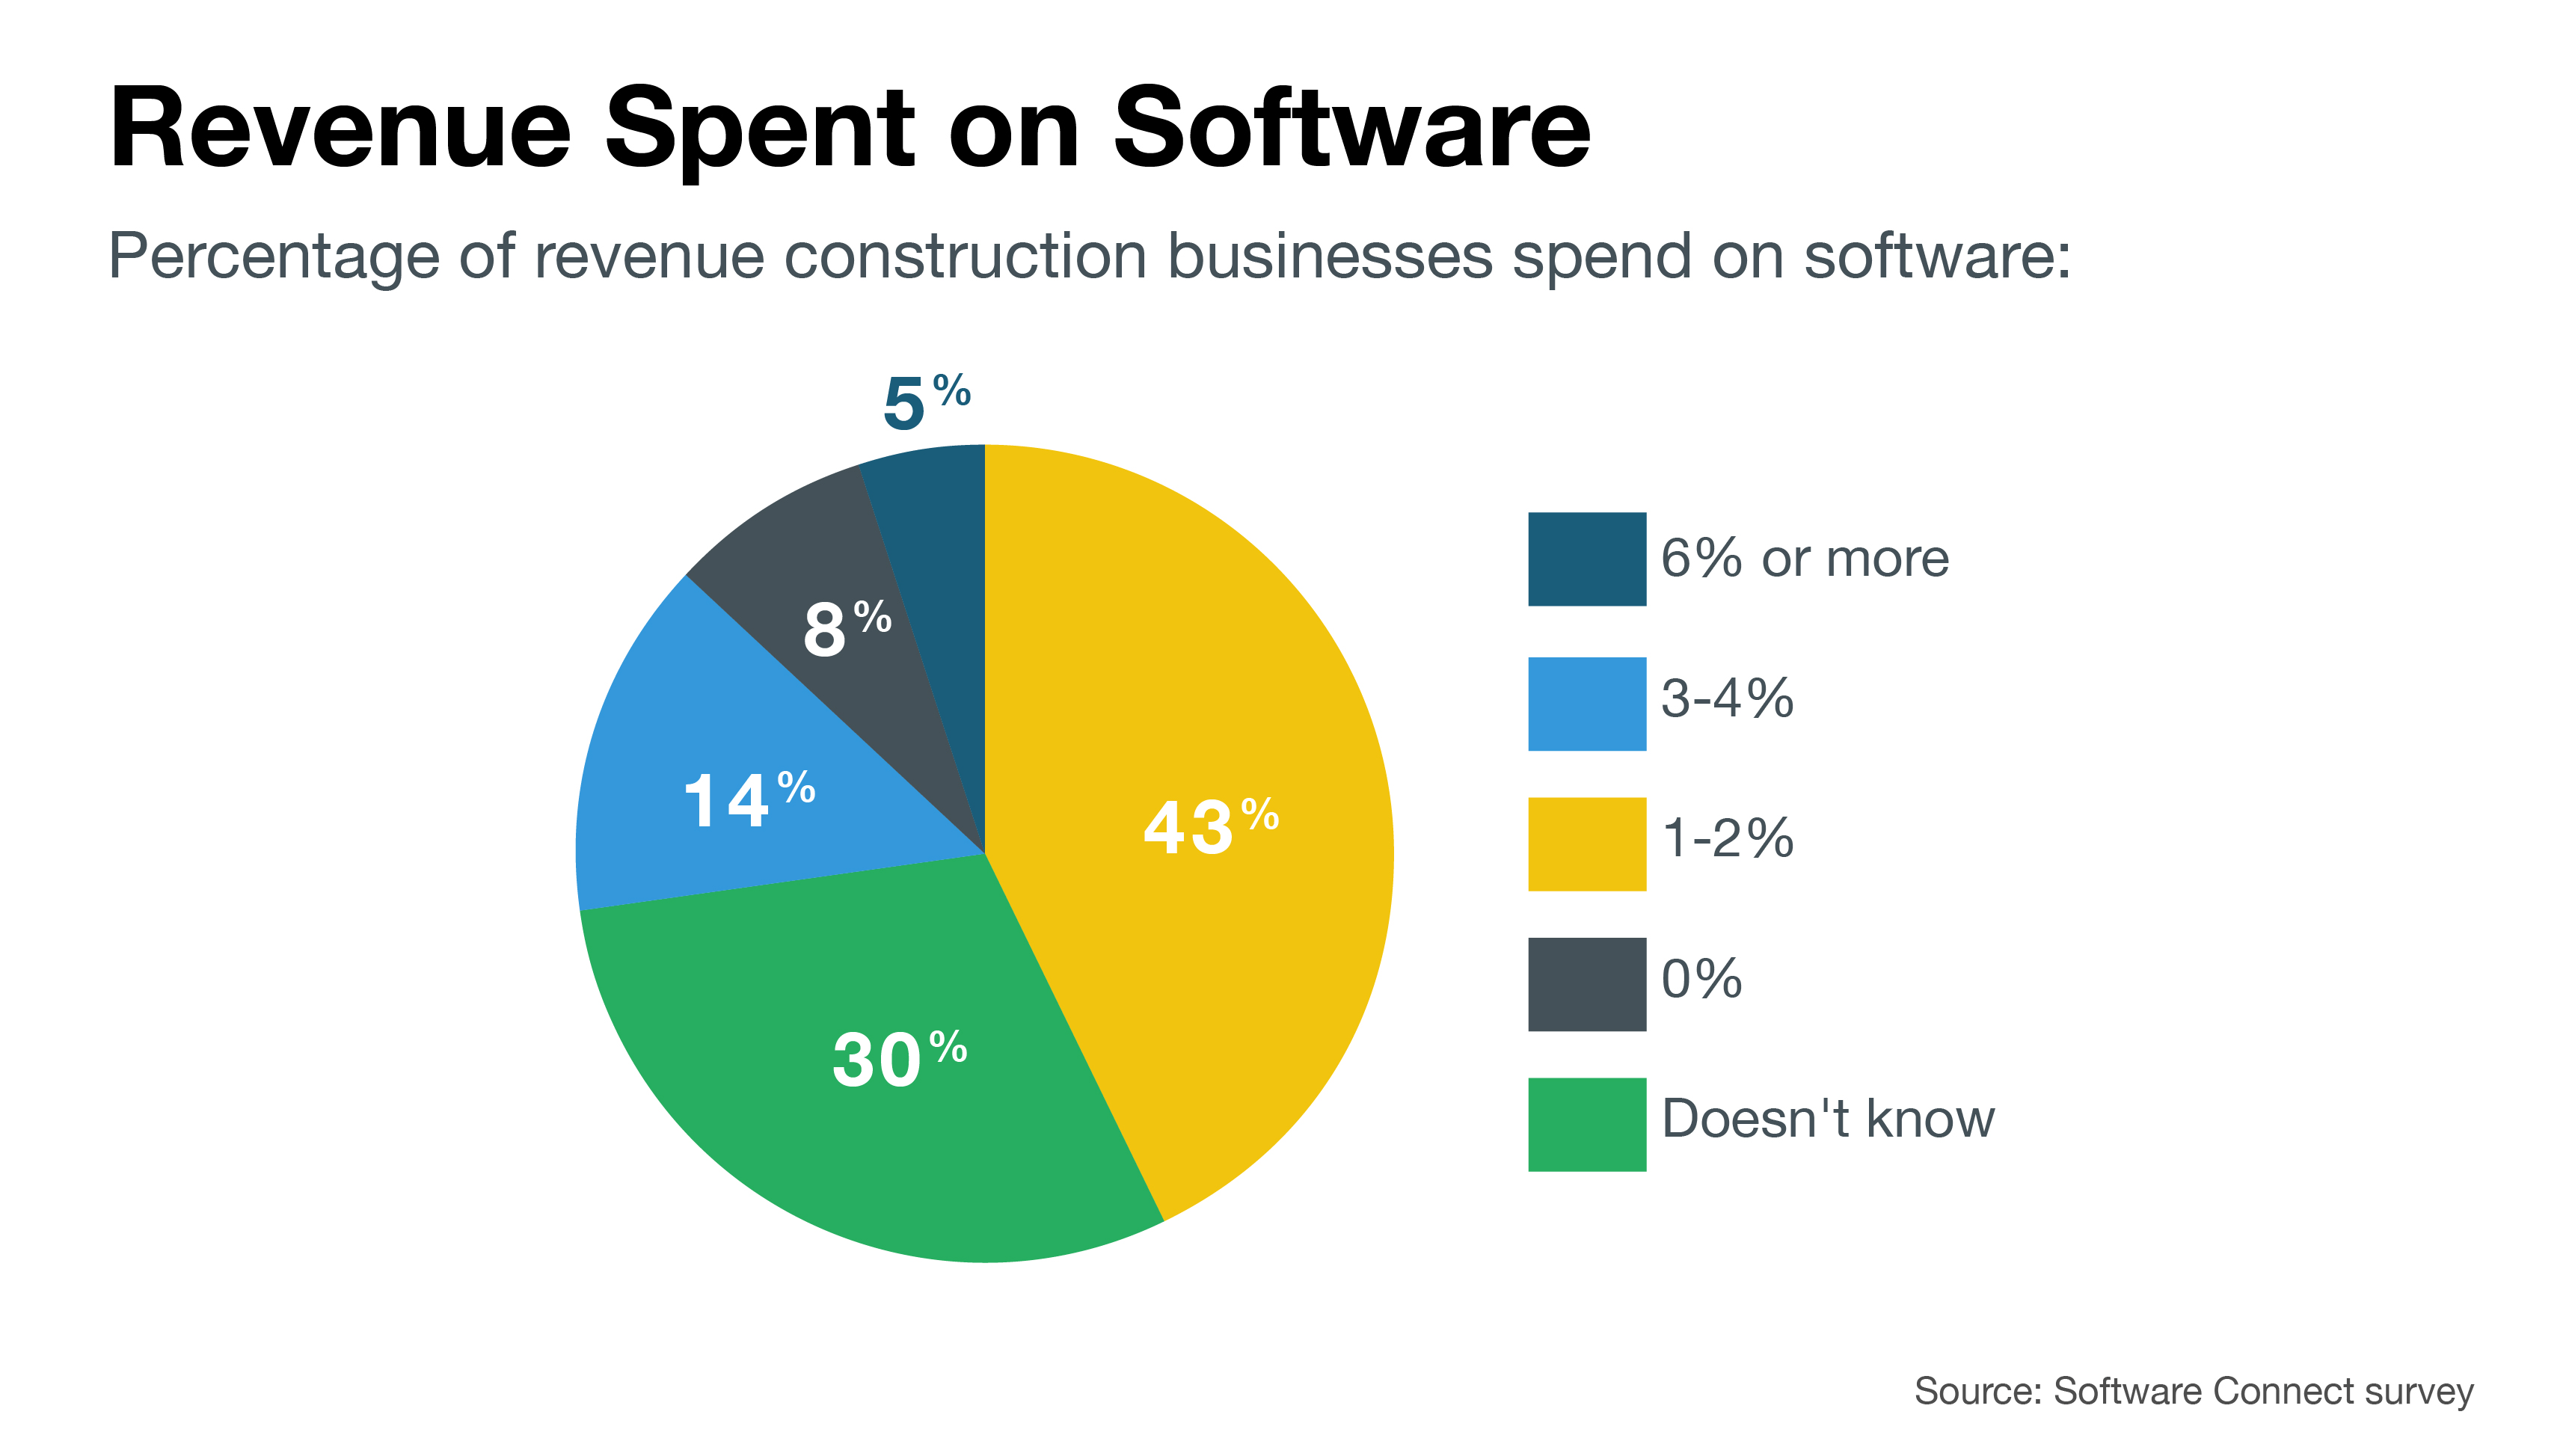 Percent of revenue construction business spend on software